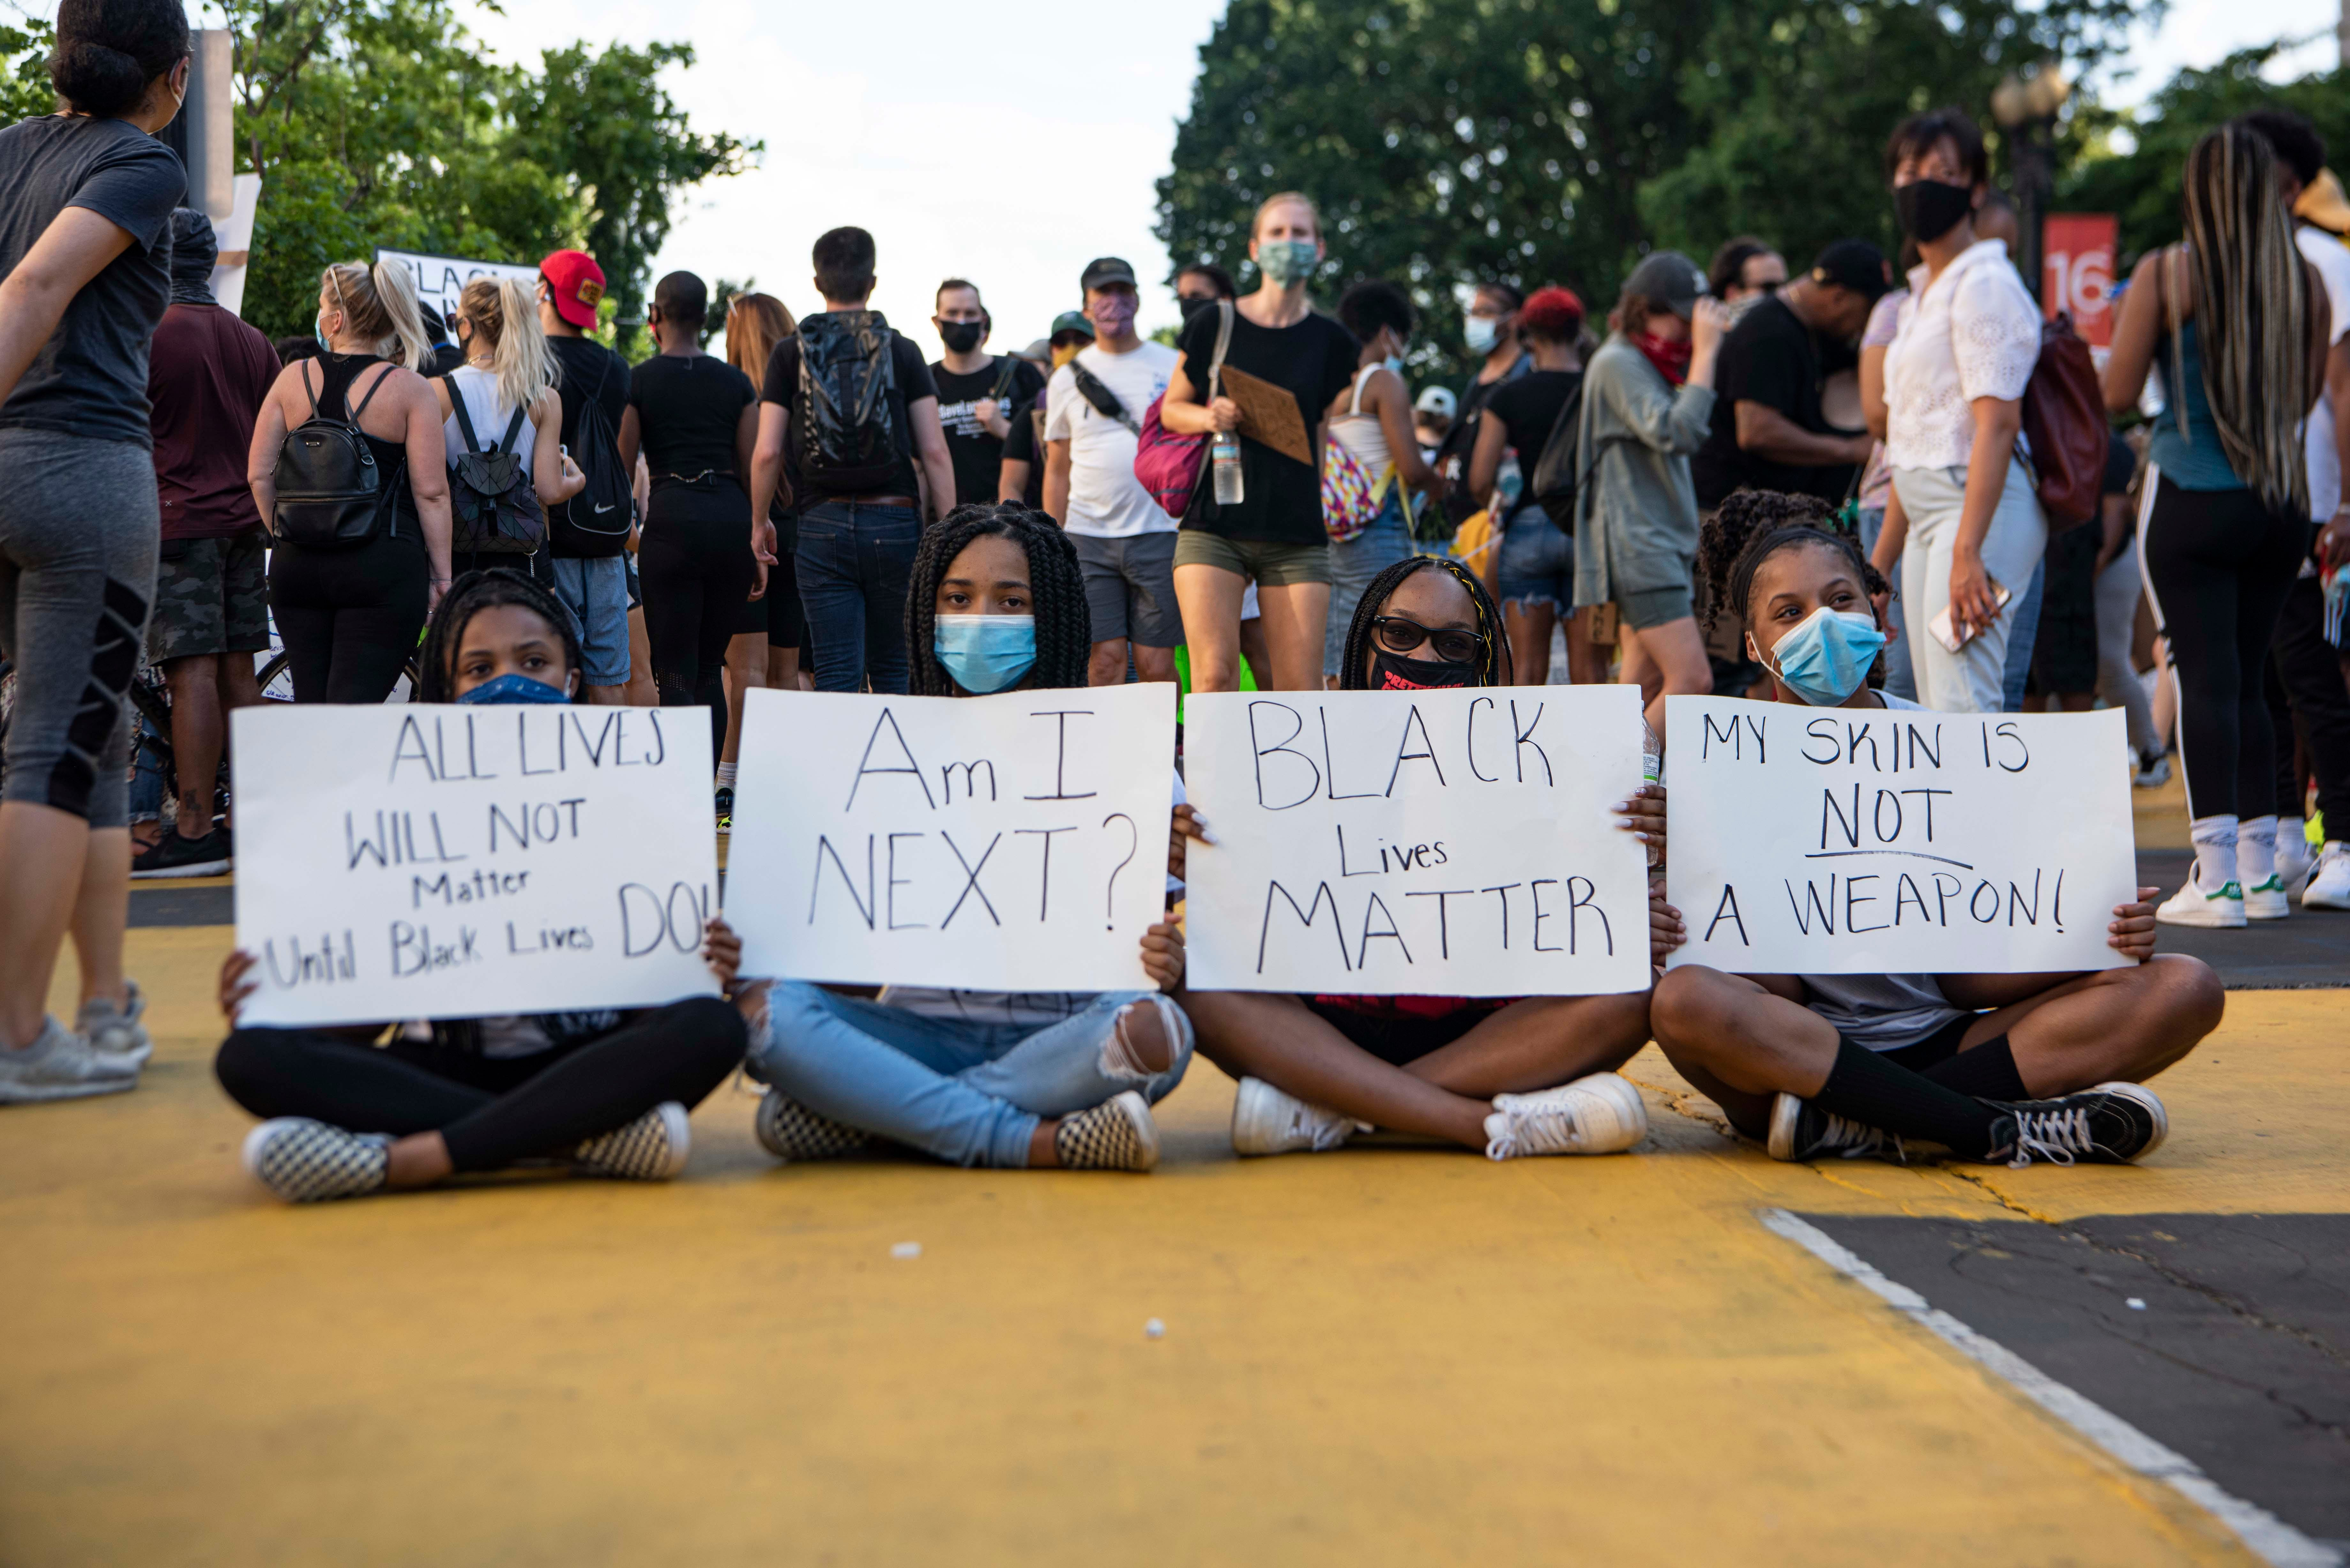 """From left to right, Amari Hawkins, 14, Riley Goins, 15, Kaleigha Kendrick, 14, and Tierra Gibson, 14, hold signs on the newly renamed """"Black Lives Matter Plaza"""" on 16th and I streets in downtown Washington, D.C., on Saturday, June 6, 2020. Protests continued following the death of George Floyd."""